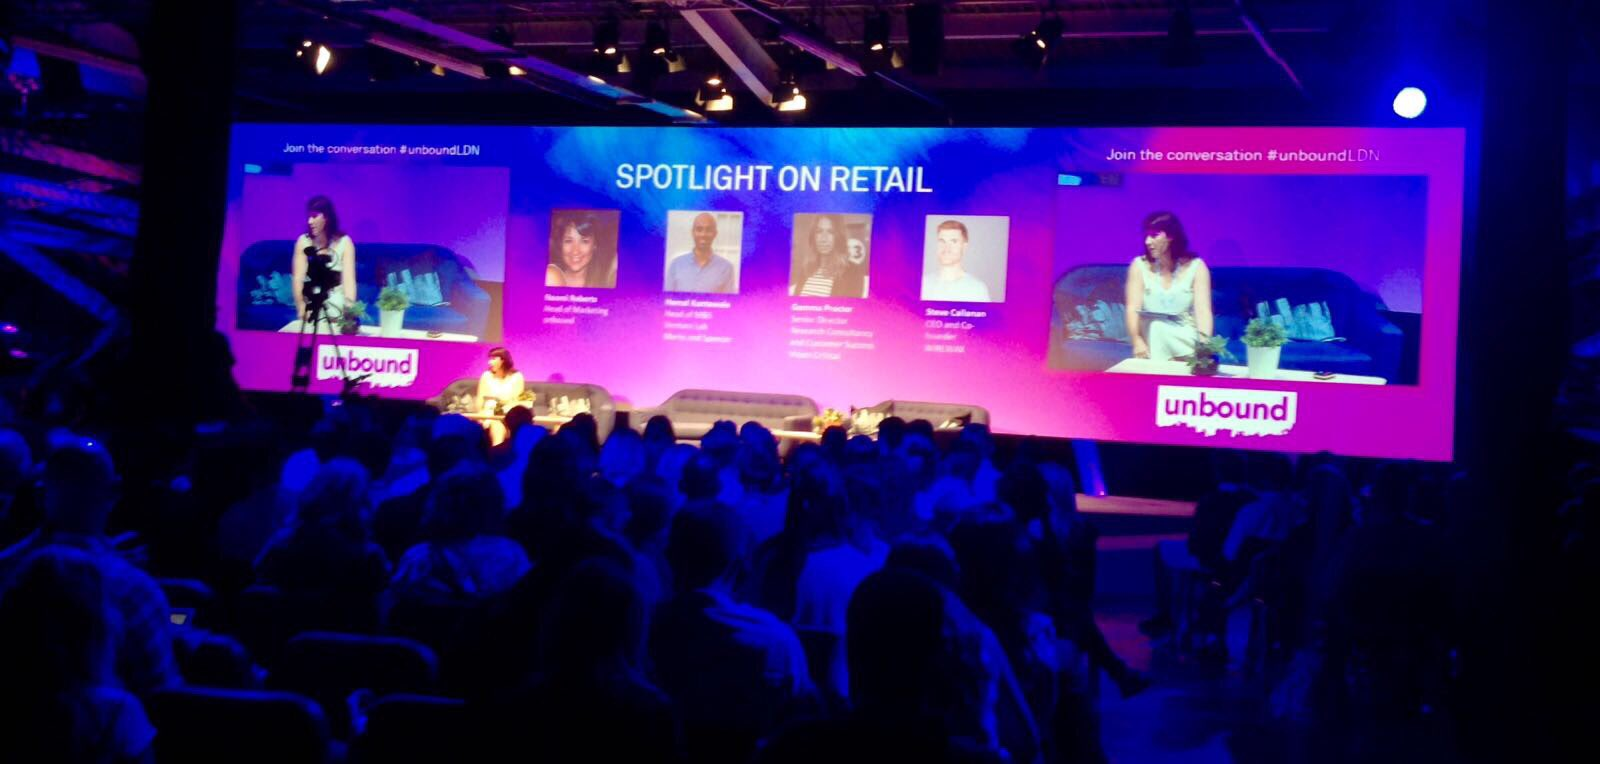 Now hearing how start up tech companies are transforming the retail landscape #UnboundLDN https://t.co/dRqtCKD7hh